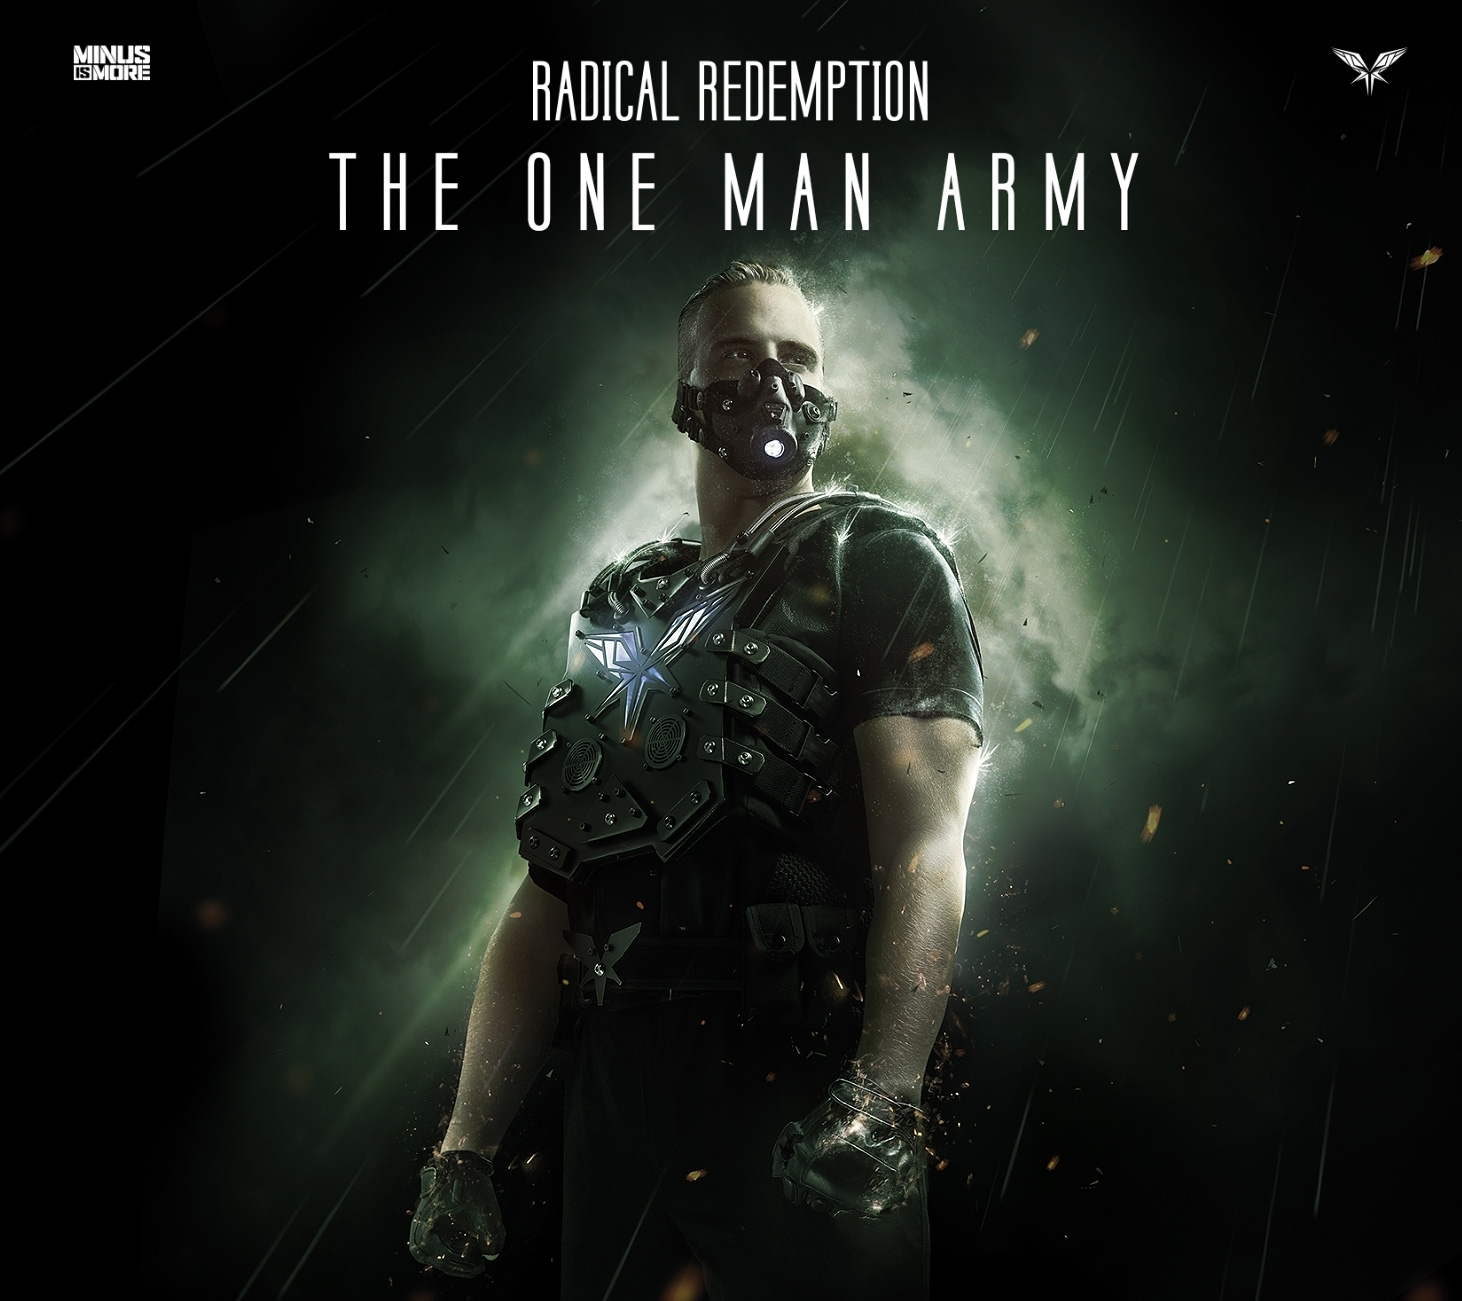 radical redemption the one man army cldm2015034 cd rigeshop. Black Bedroom Furniture Sets. Home Design Ideas